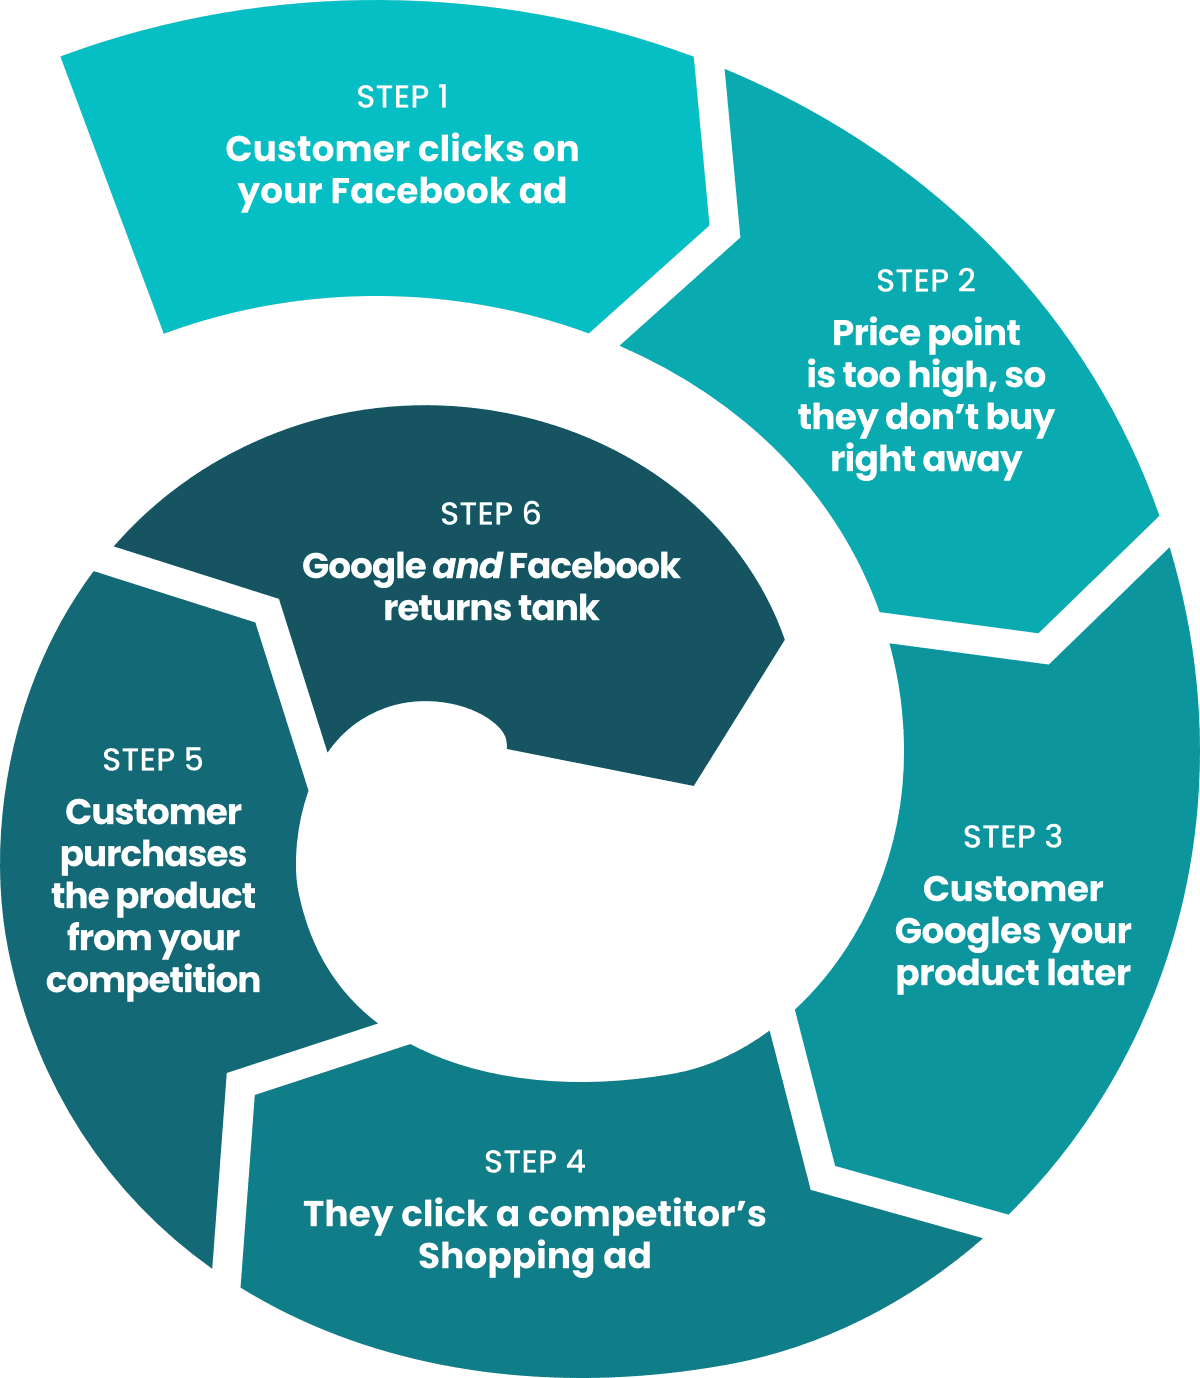 Infographic displaying the steps a user takes to illustrate that underspending on Google will hurt both Facebook and Google returns. The user will click your competitors' Google ads after viewing your social ads.